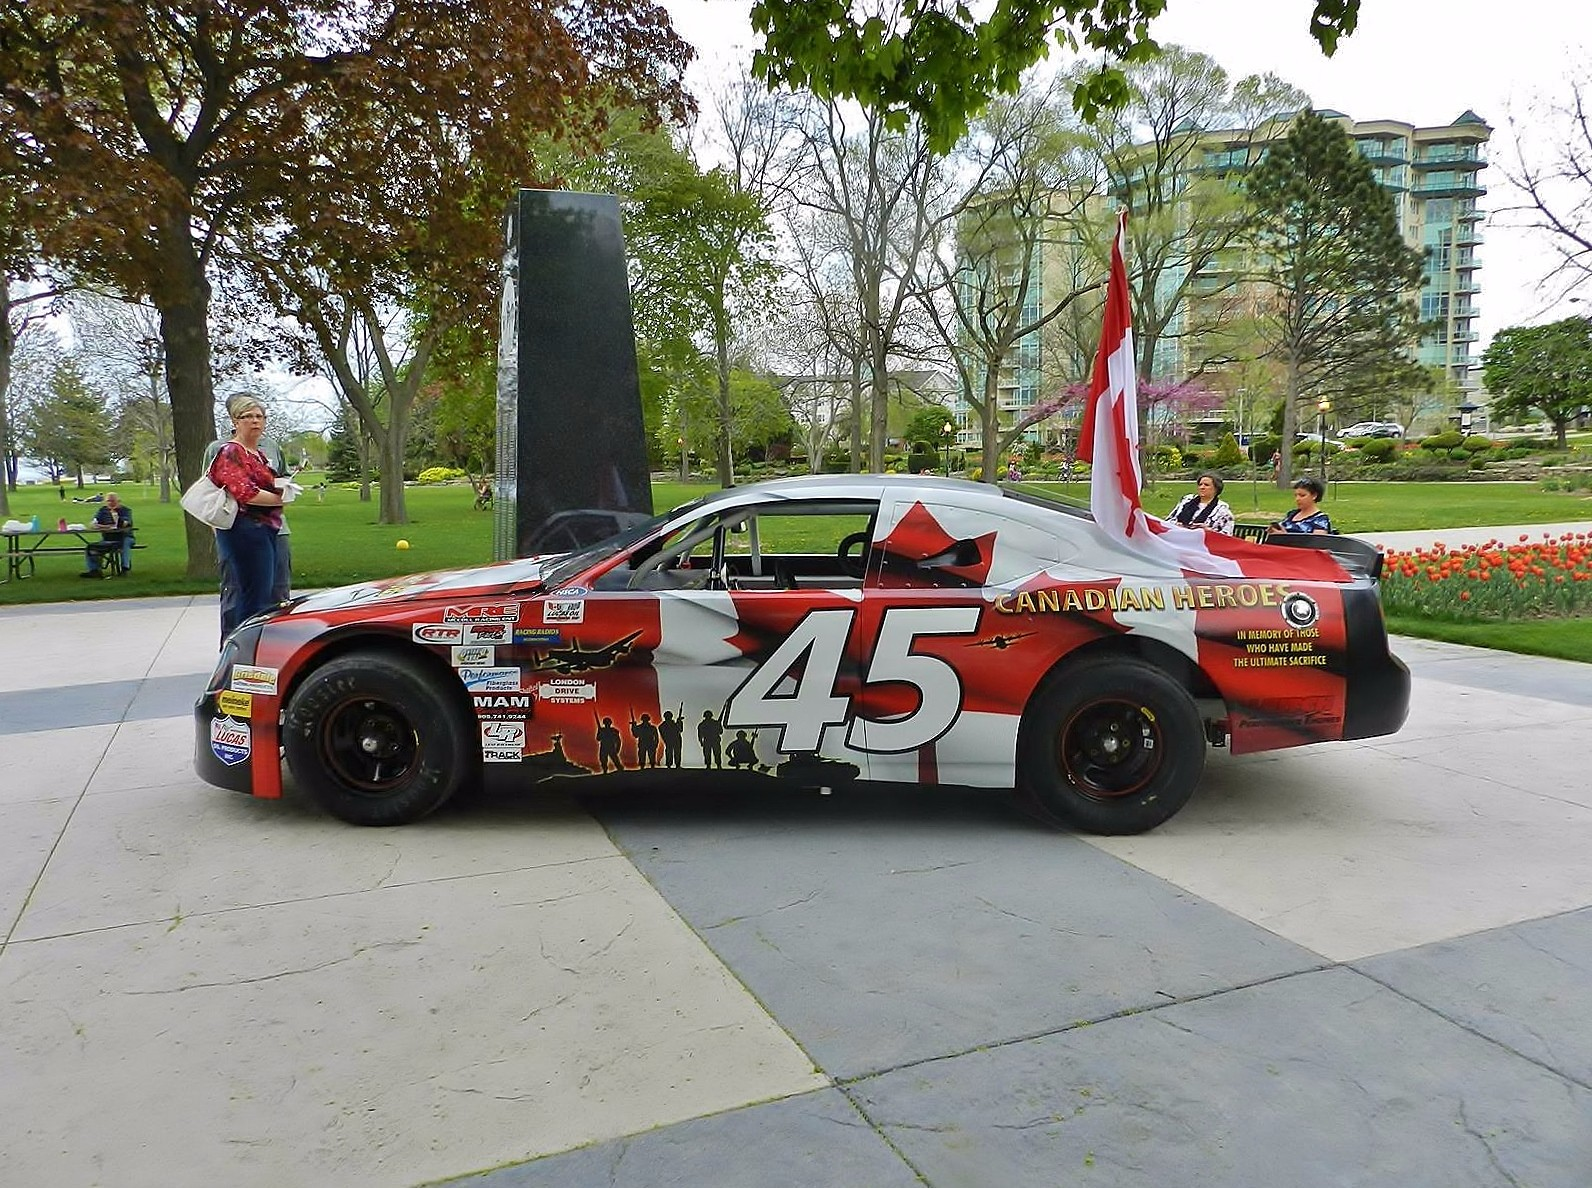 Canadian Heroes Race Car